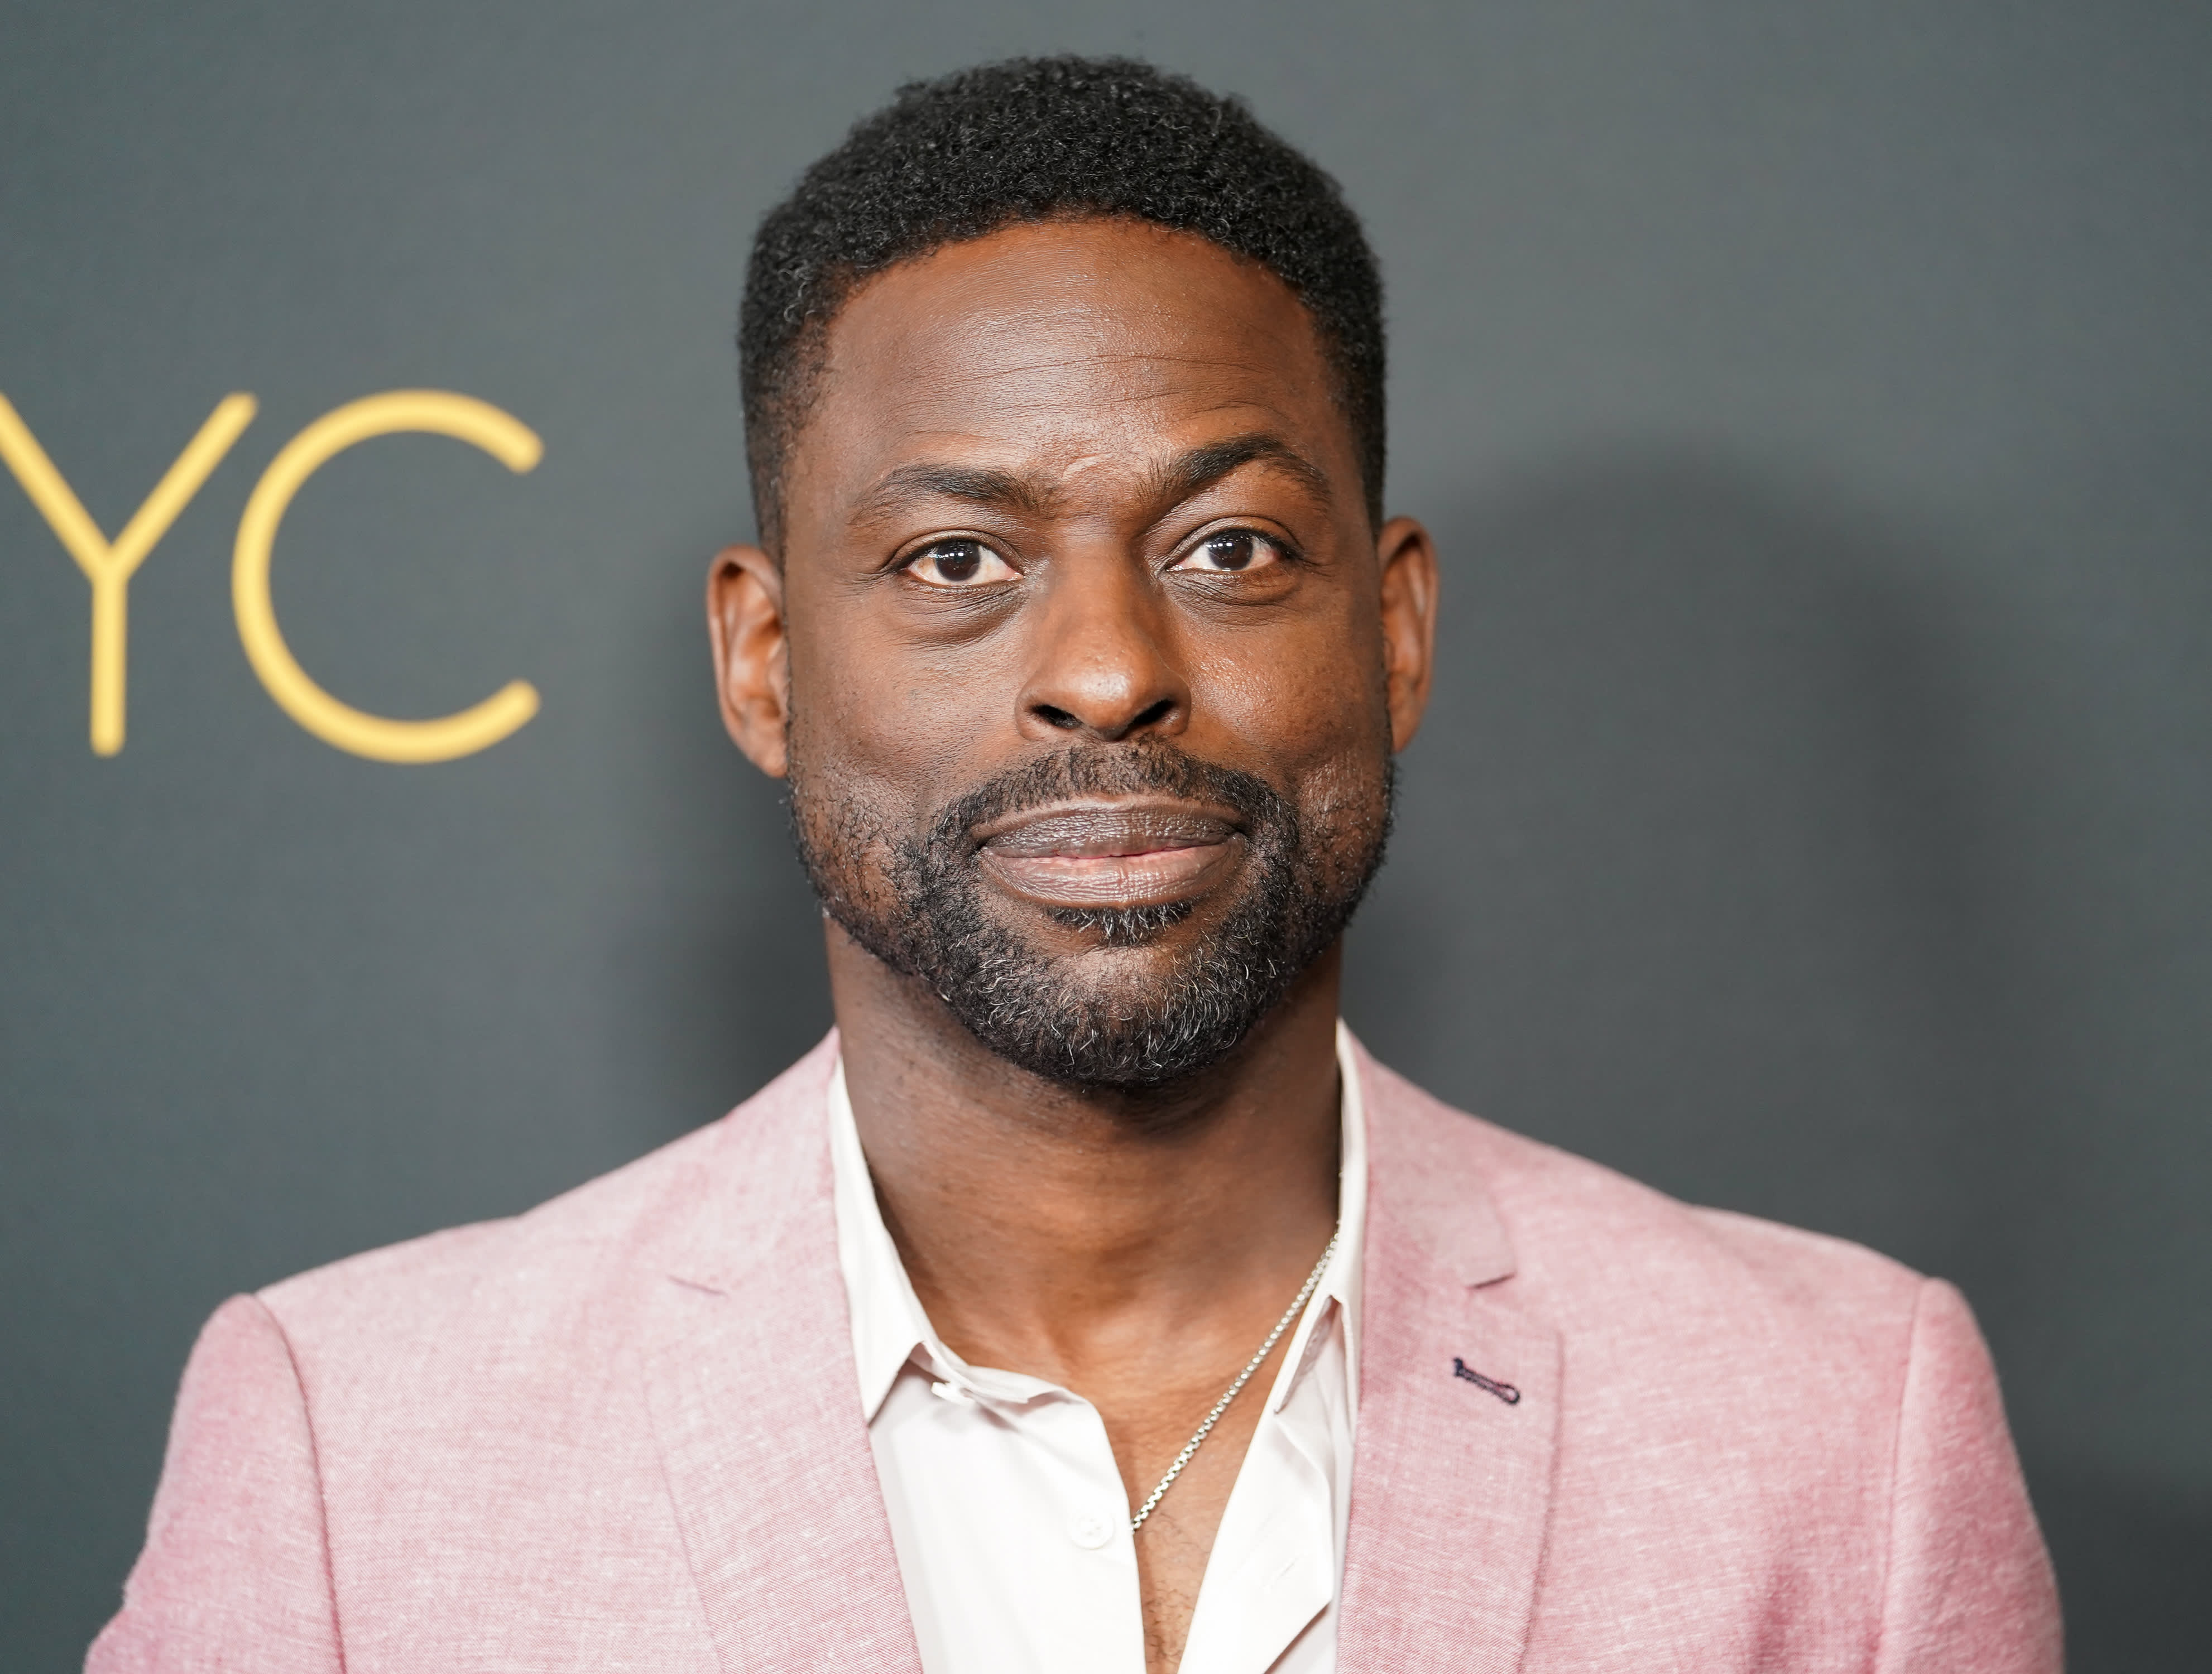 'This Is Us' star Sterling K. Brown wants to live to 100 using this fitness routine